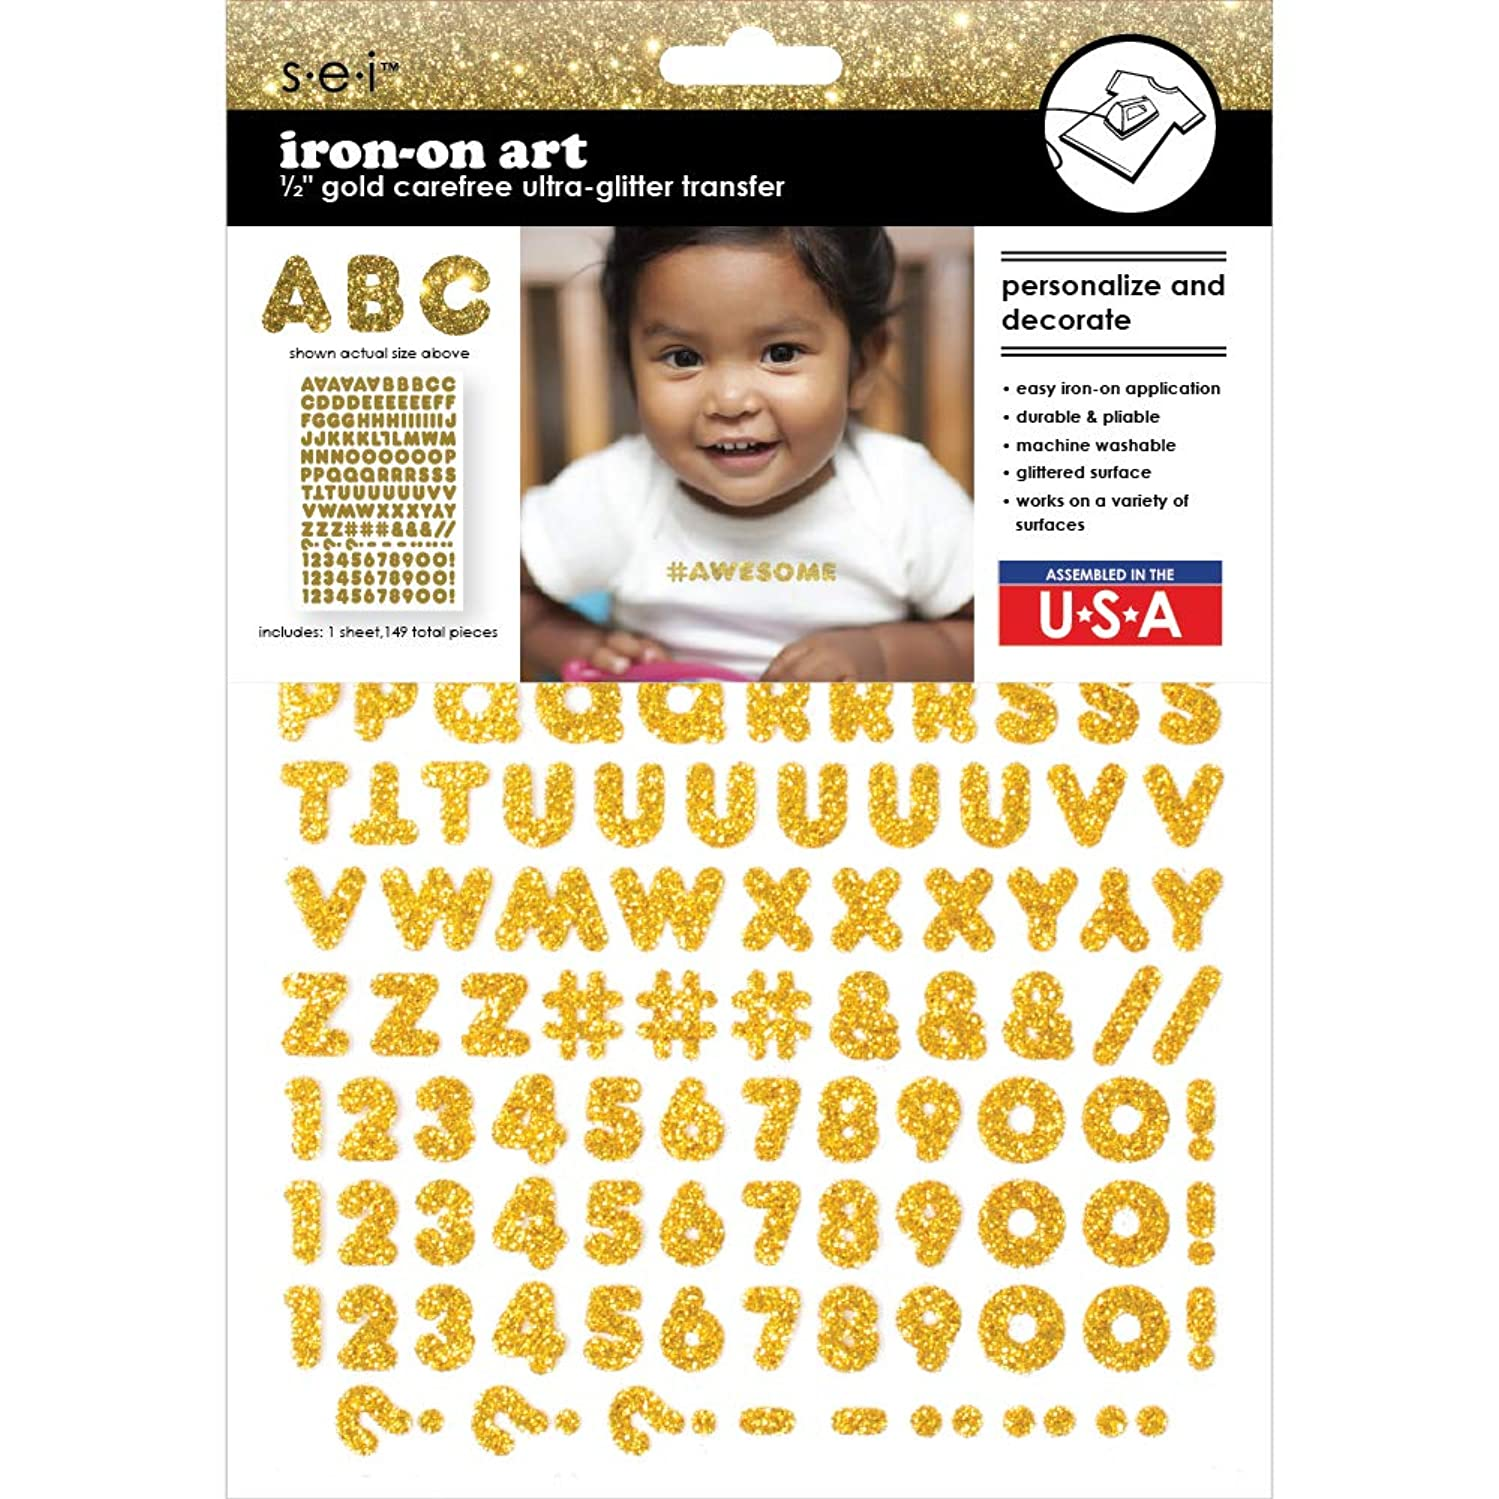 Sei 1/2 Inch Carefree Glitter Letters & Numbers Iron on Transfer, Gold, 1-Sheet